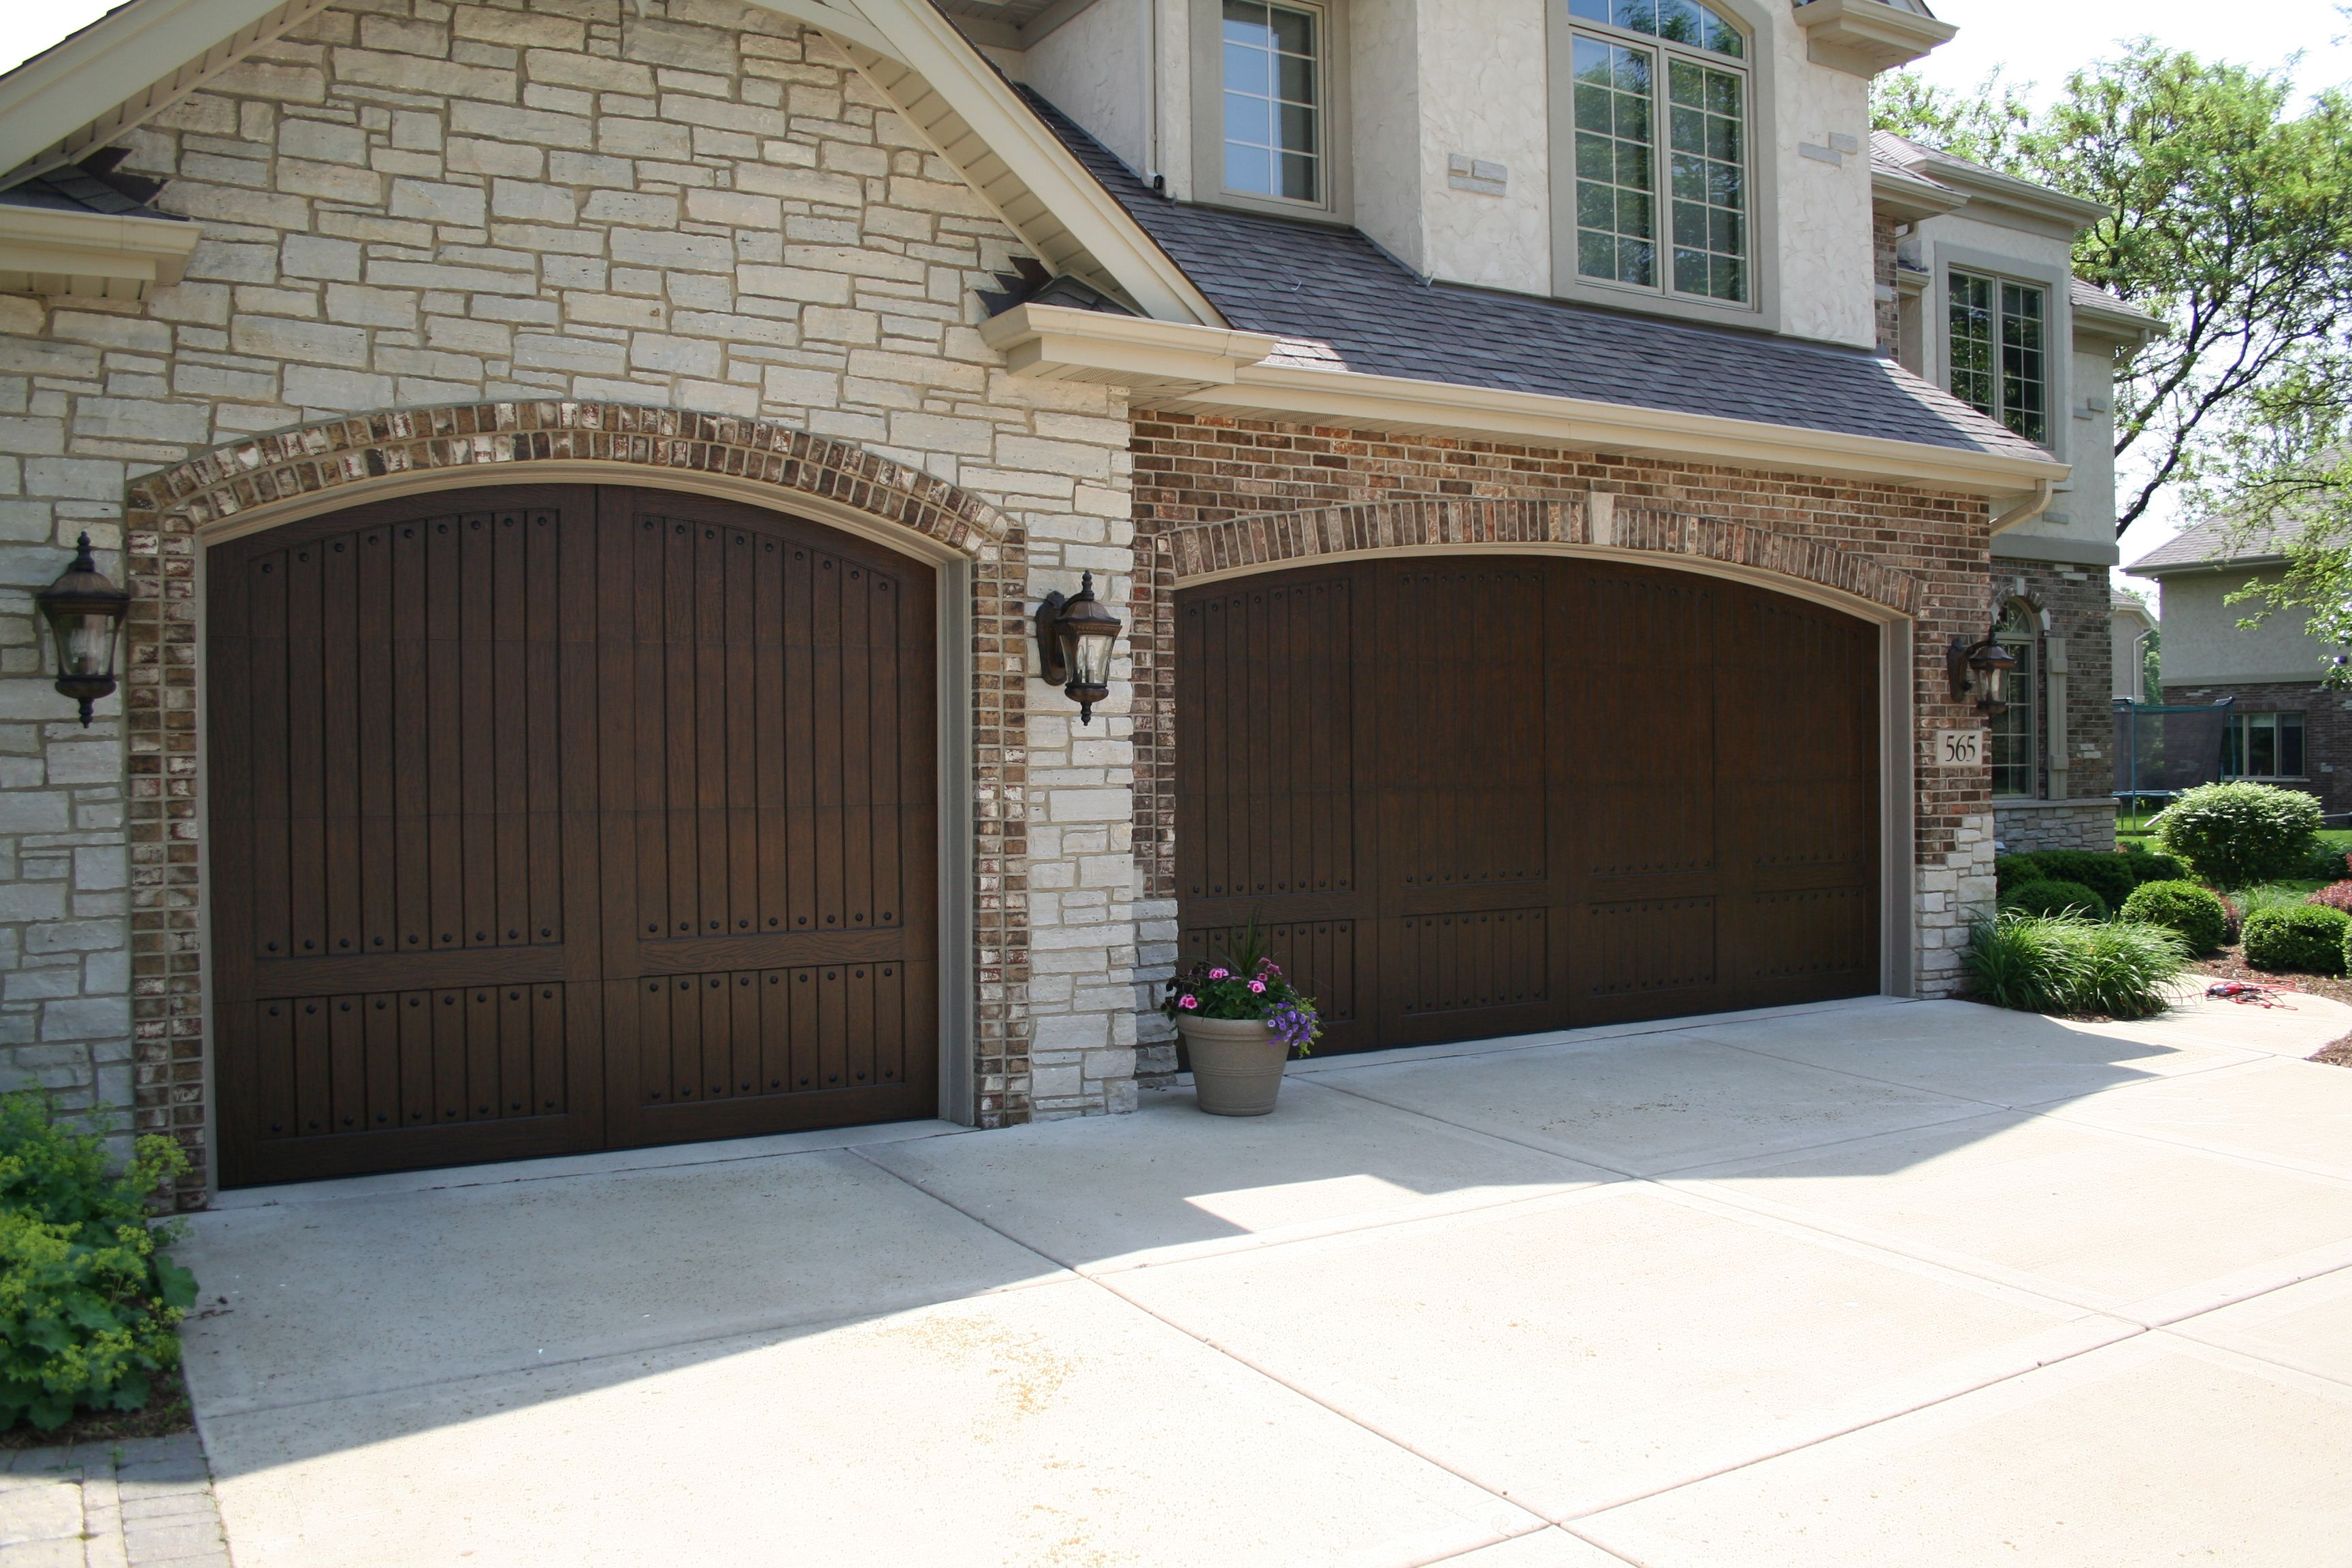 Carriage House Garage Doors Faux Wood French Country Style Garage Door Www Garagedo Carriage House Garage Carriage House Garage Doors Modern Bungalow Exterior